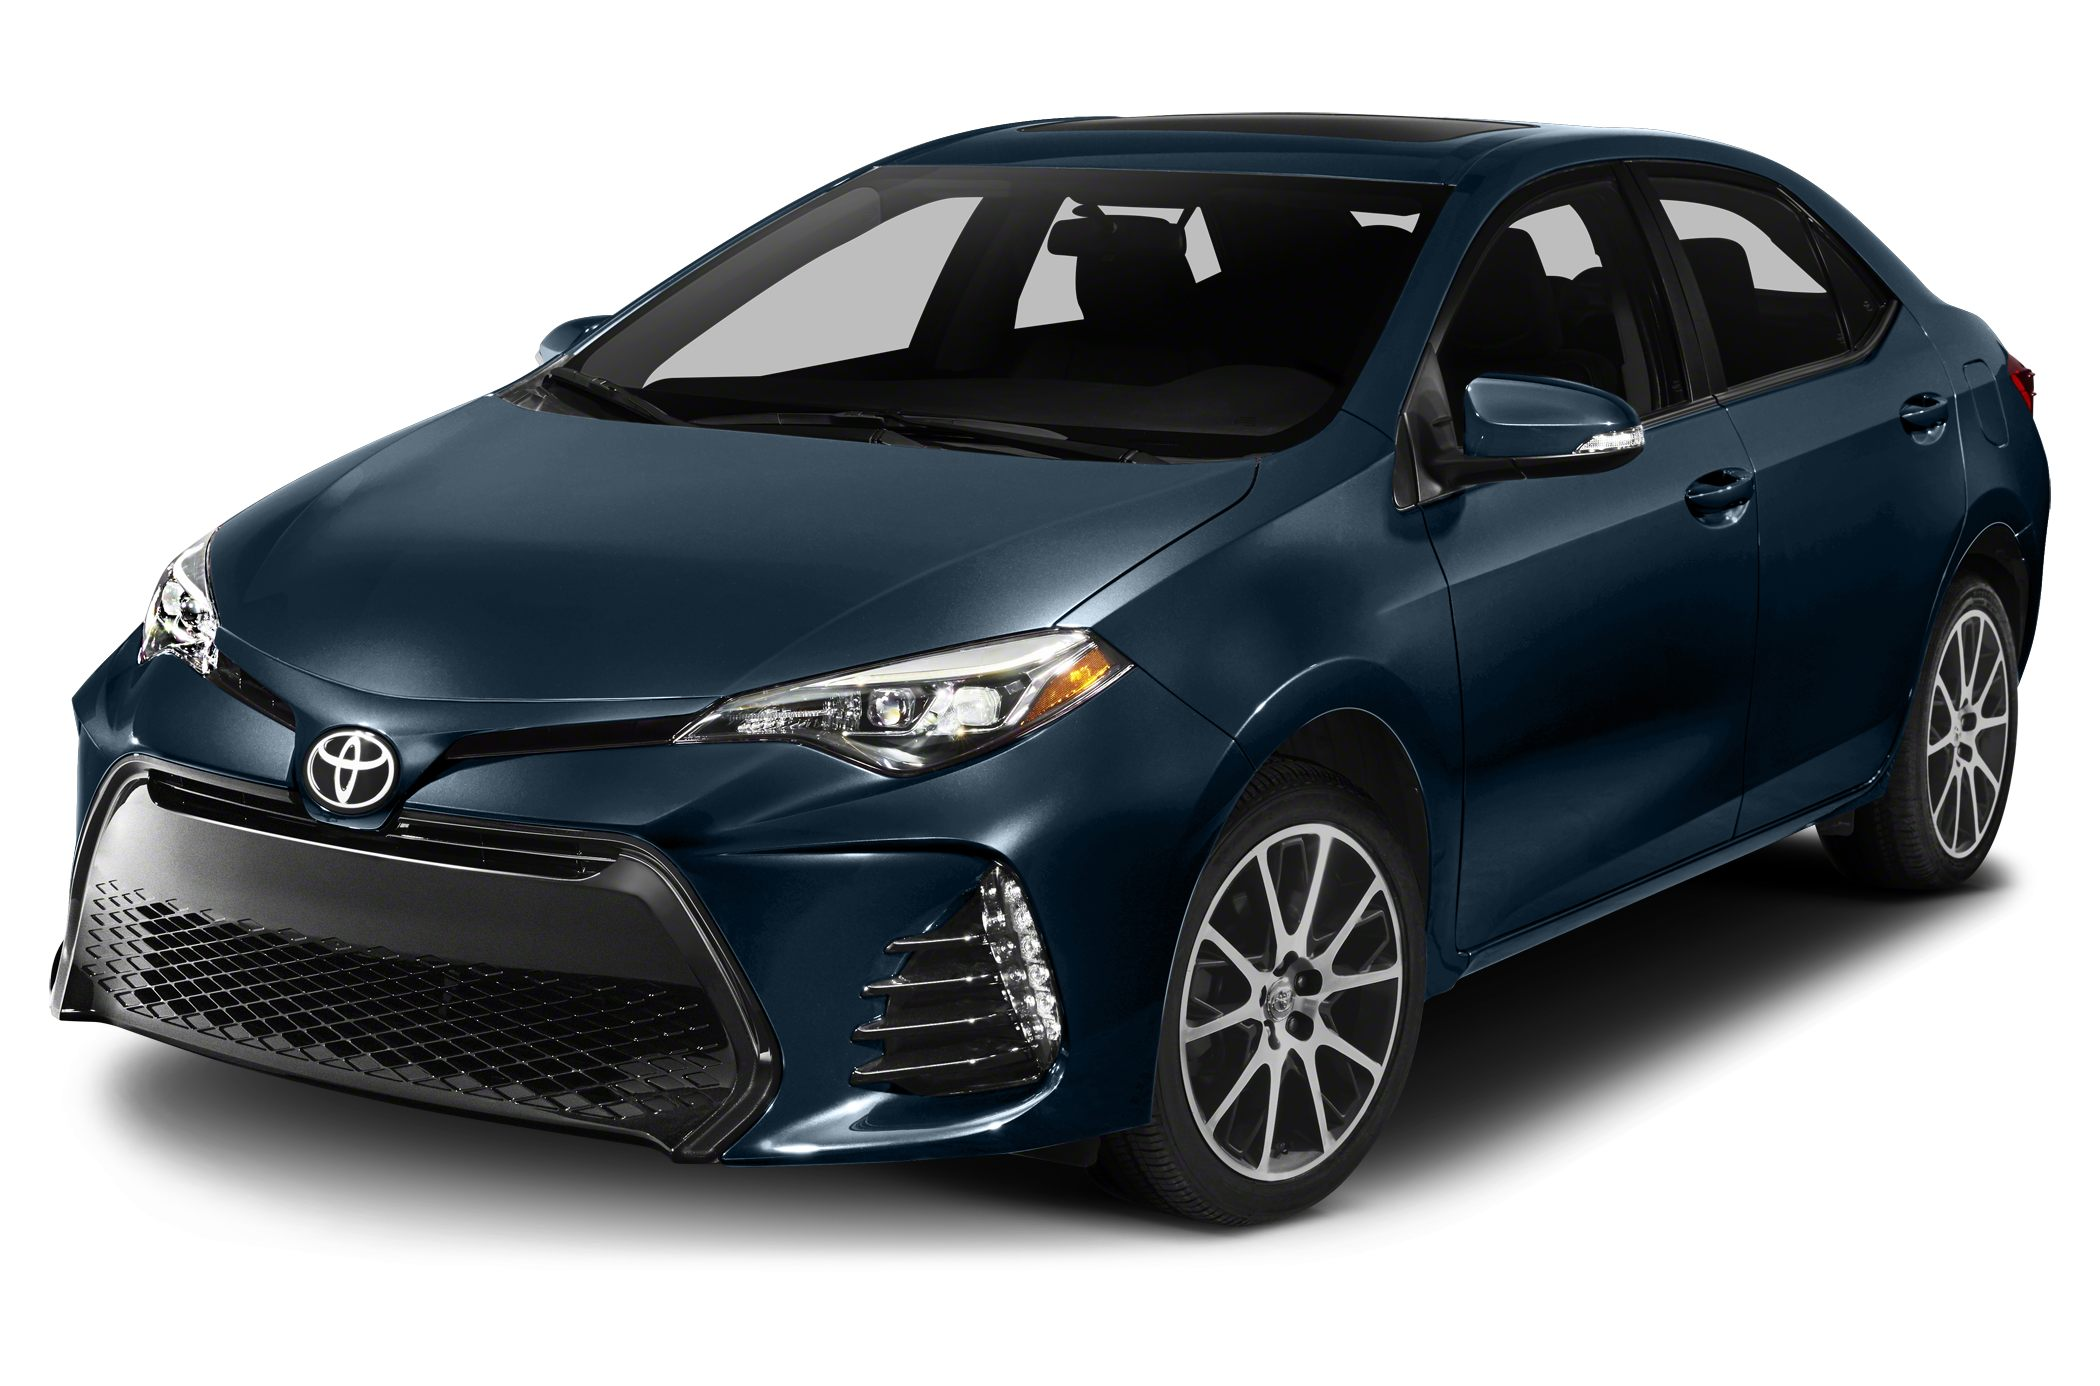 Toyota Corolla News Photos And Buying Information Autoblog